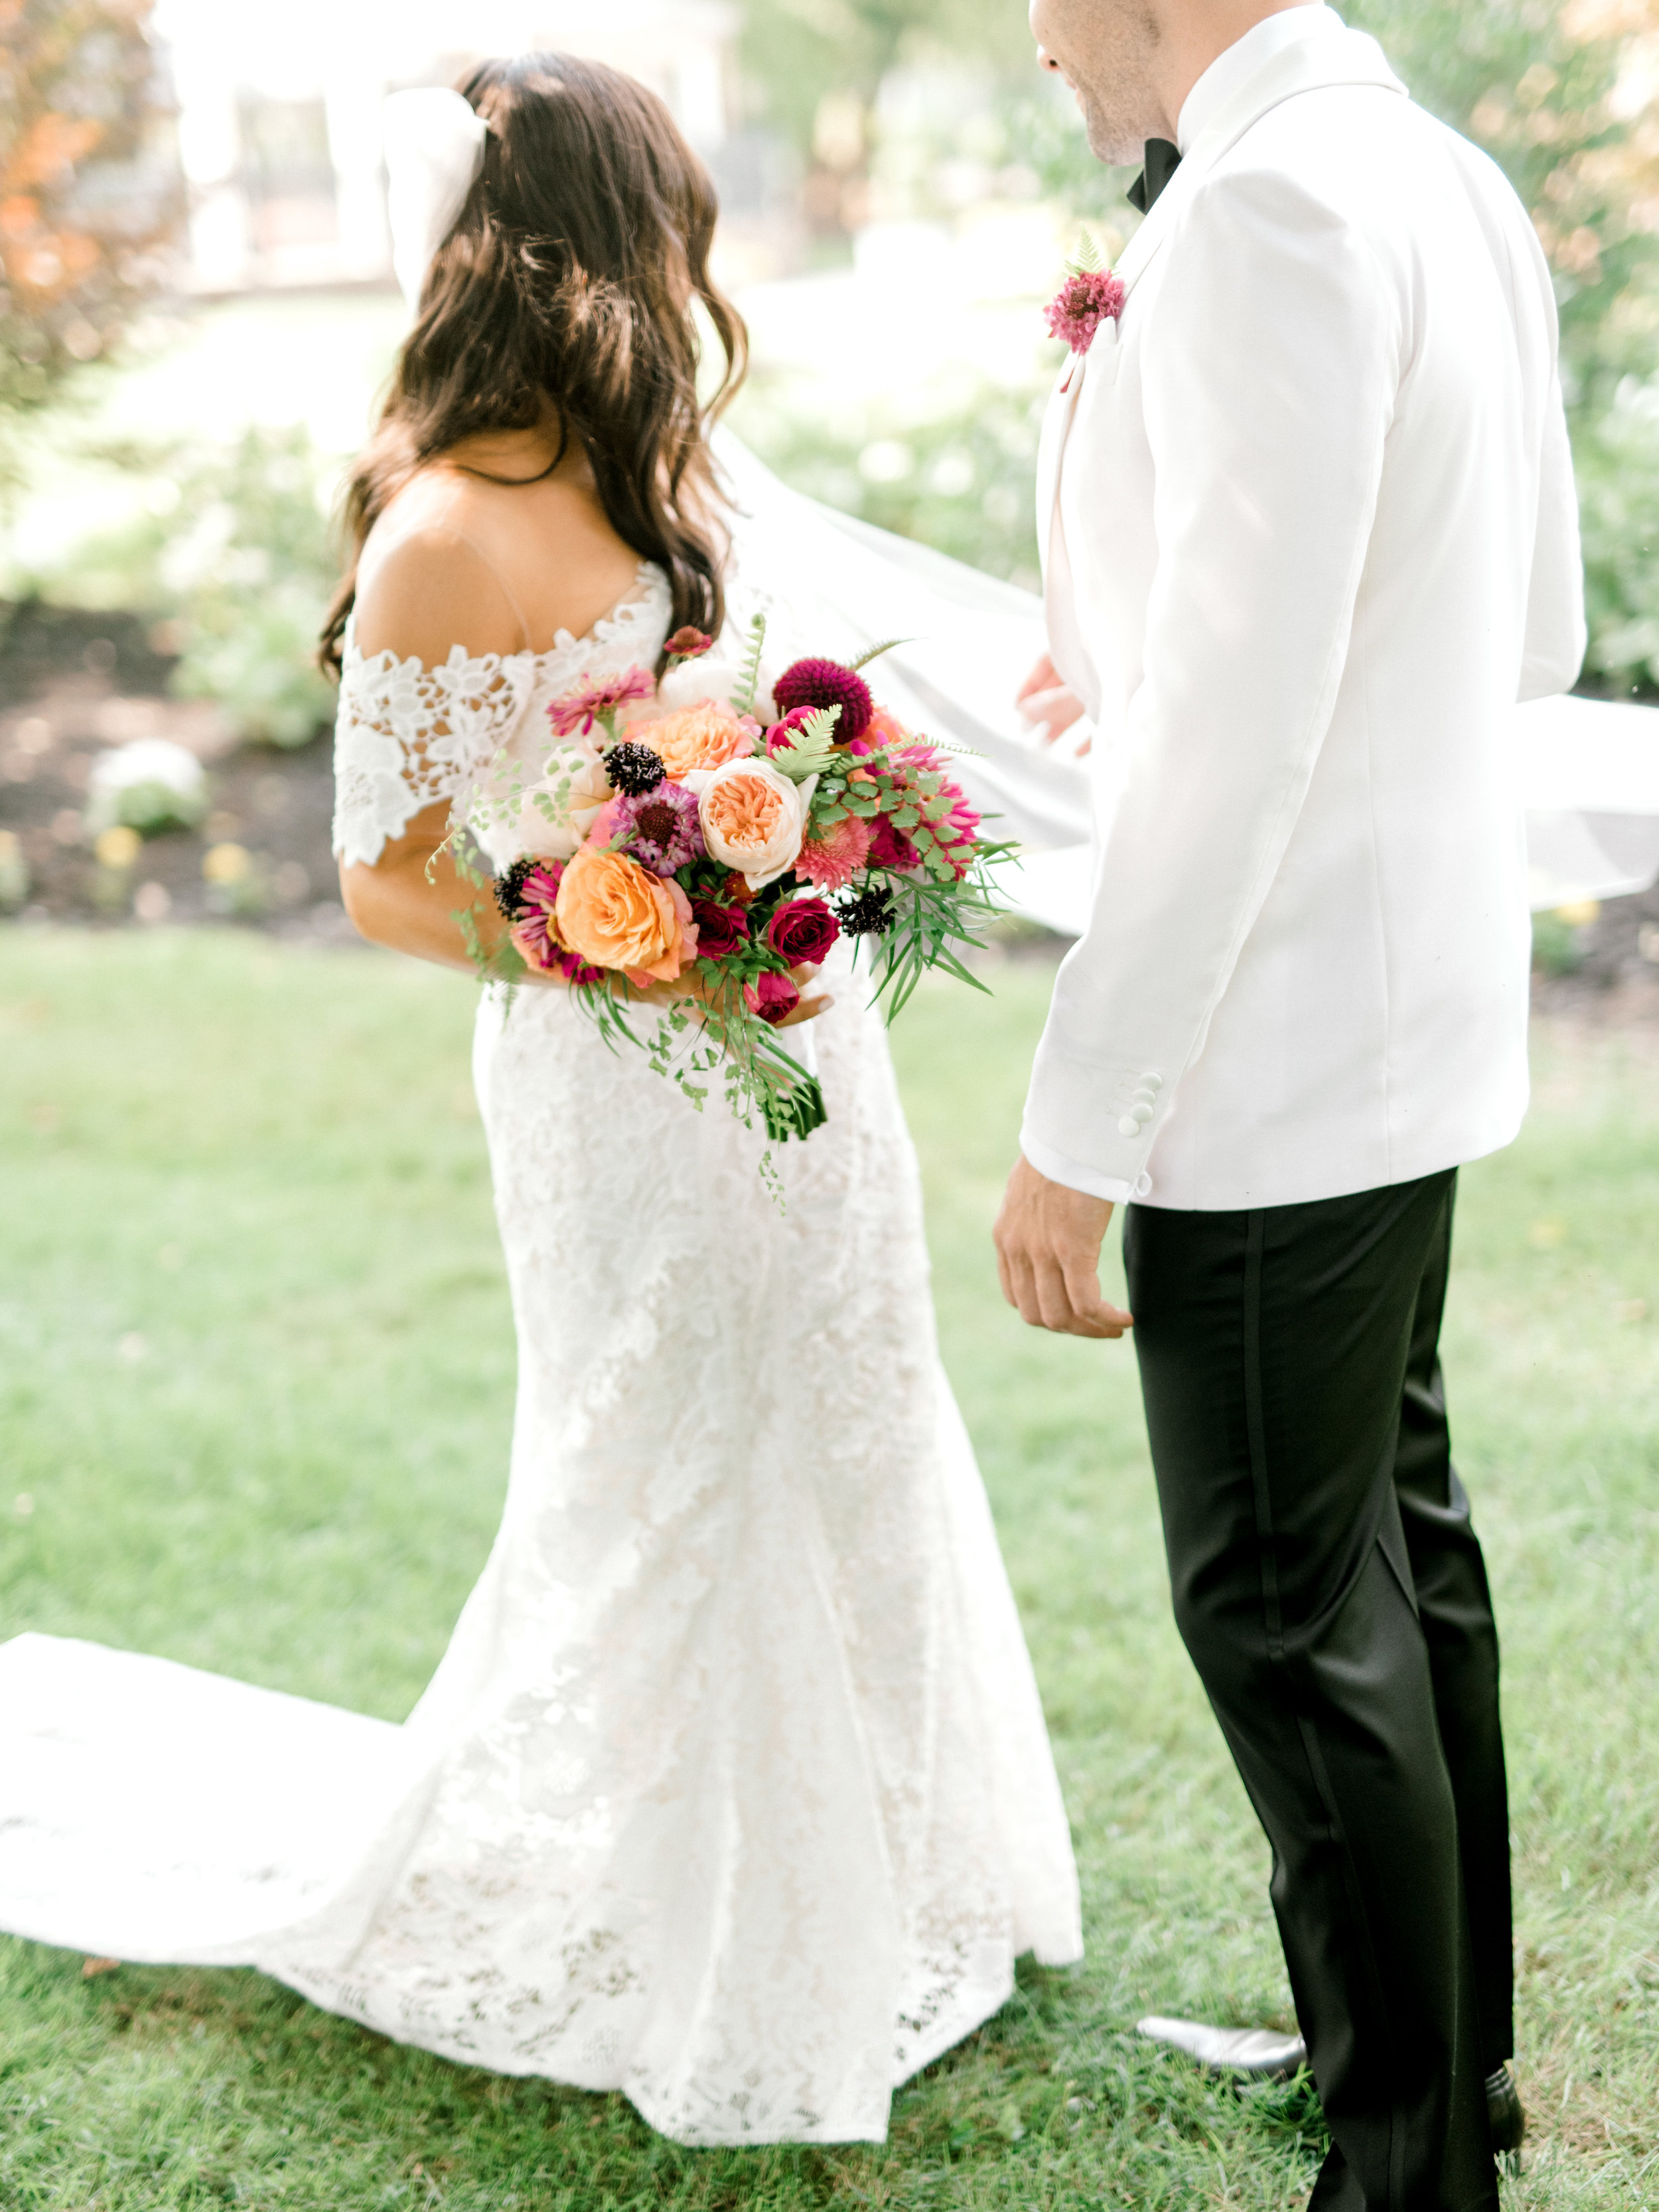 We absolutely adore this modern colorful flowers paired with the classic black and white look for this modern summer wedding at Hotel du Village.